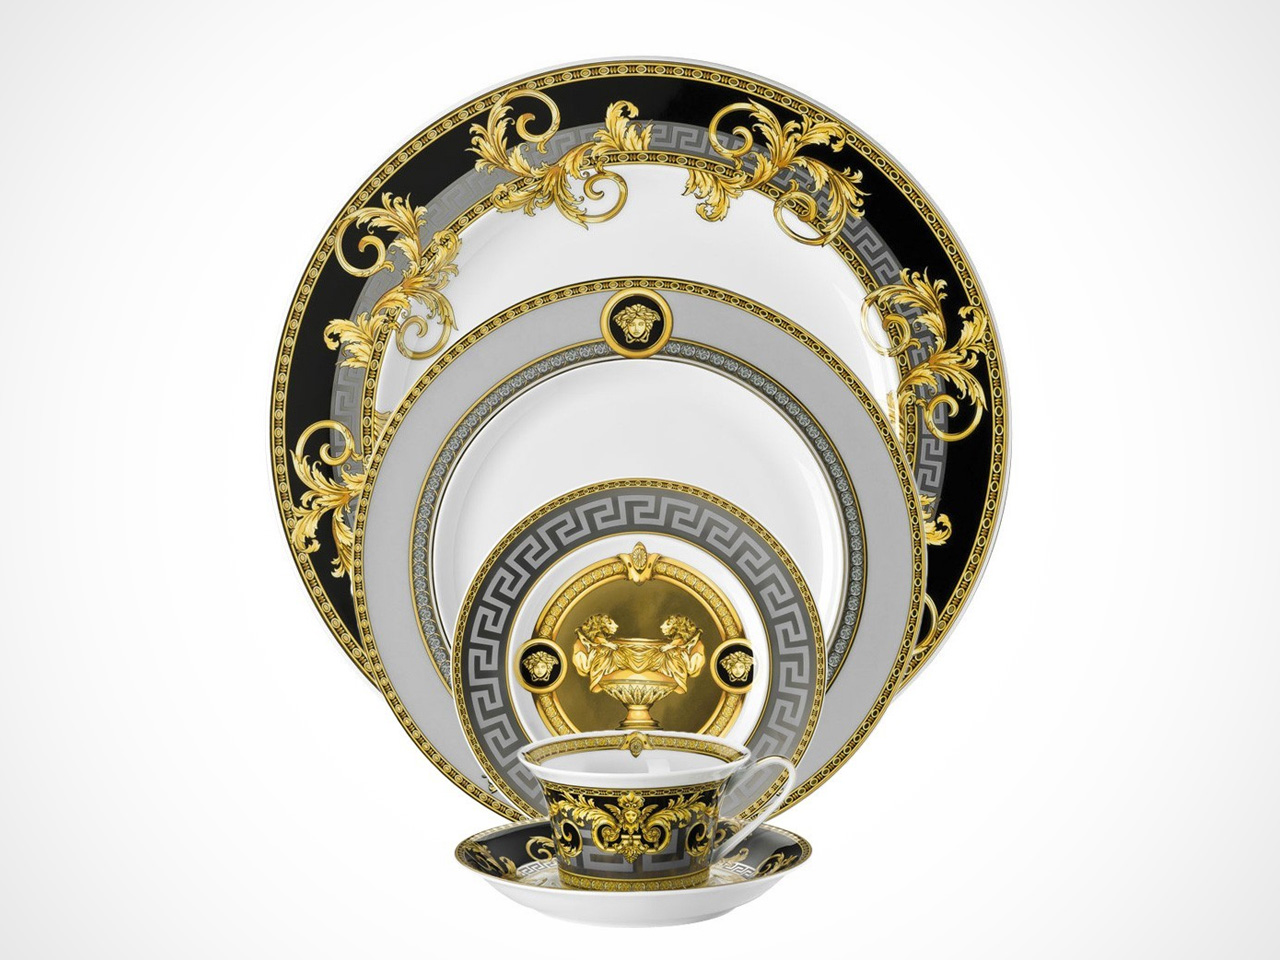 Versace Prestige Gala 5 piece place setting on white background.